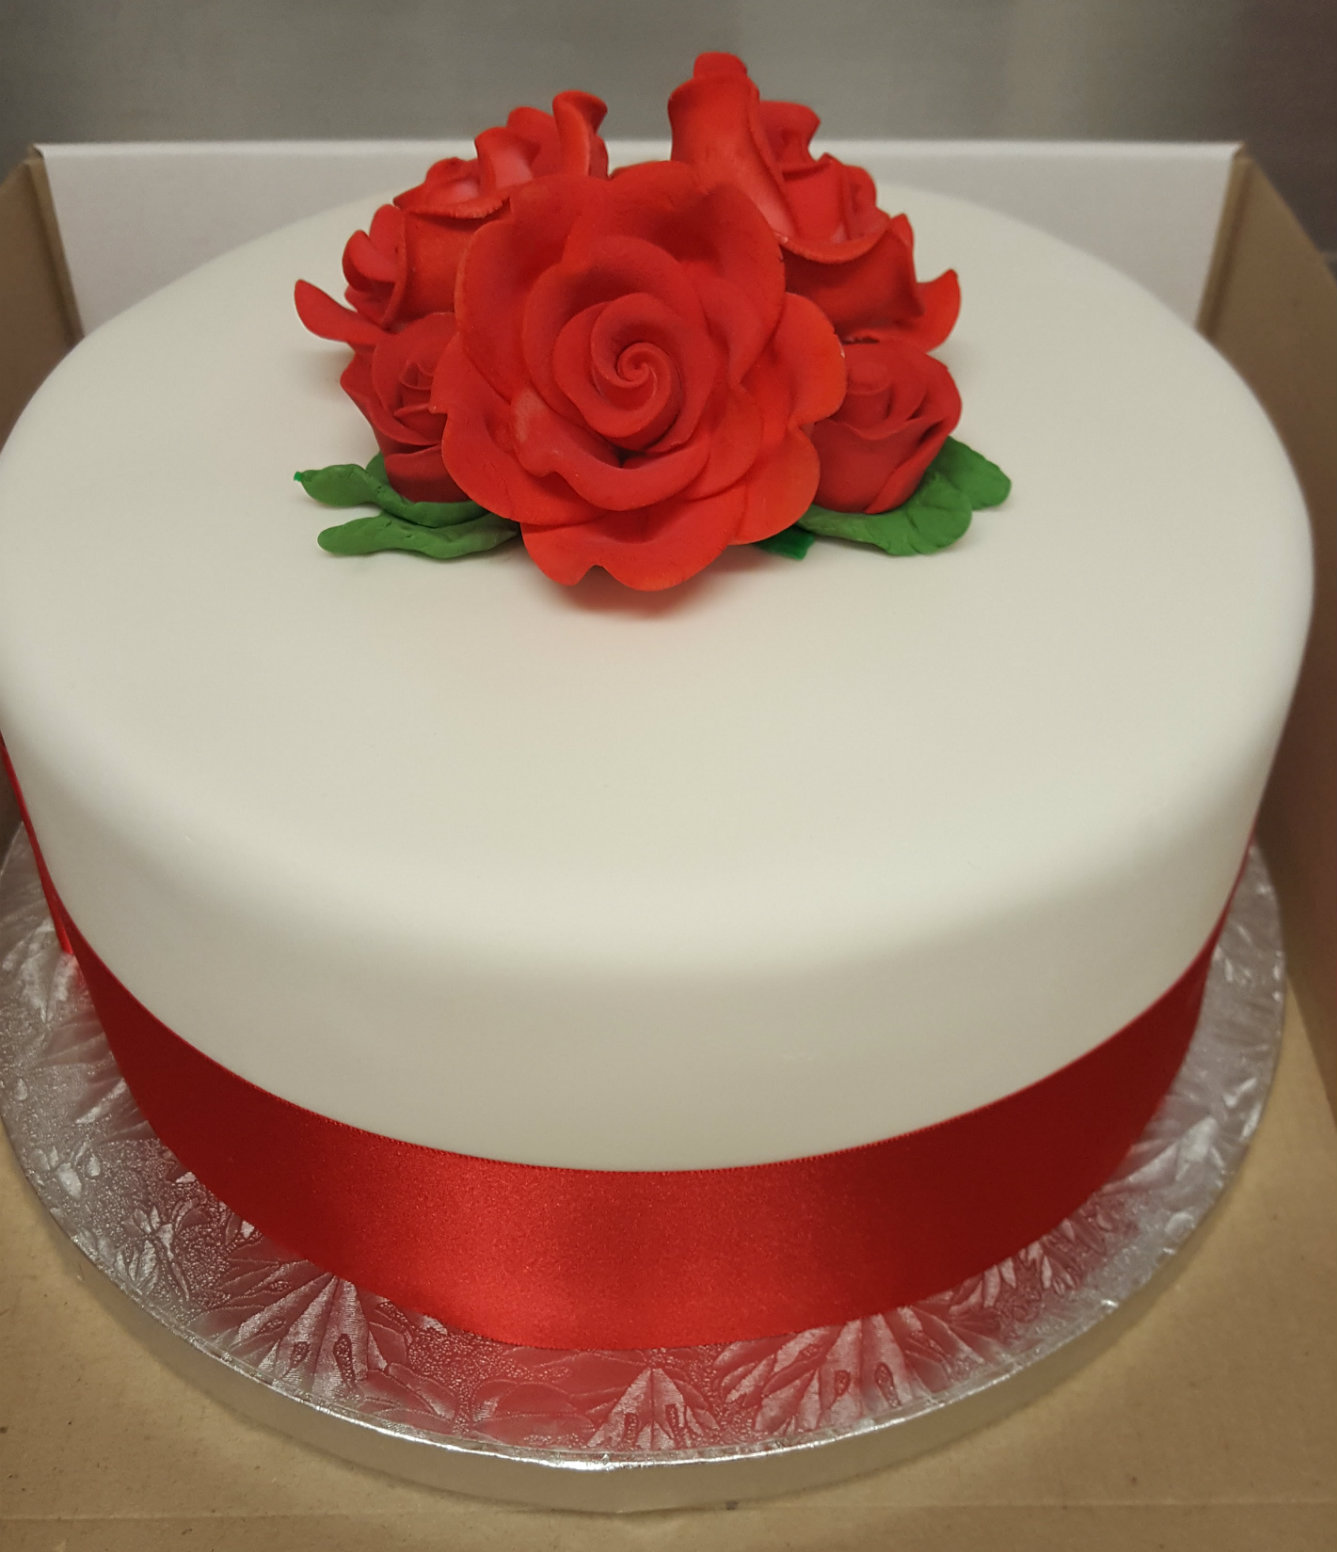 Single Tier White With Red Roses Wedding Cake Chocolate